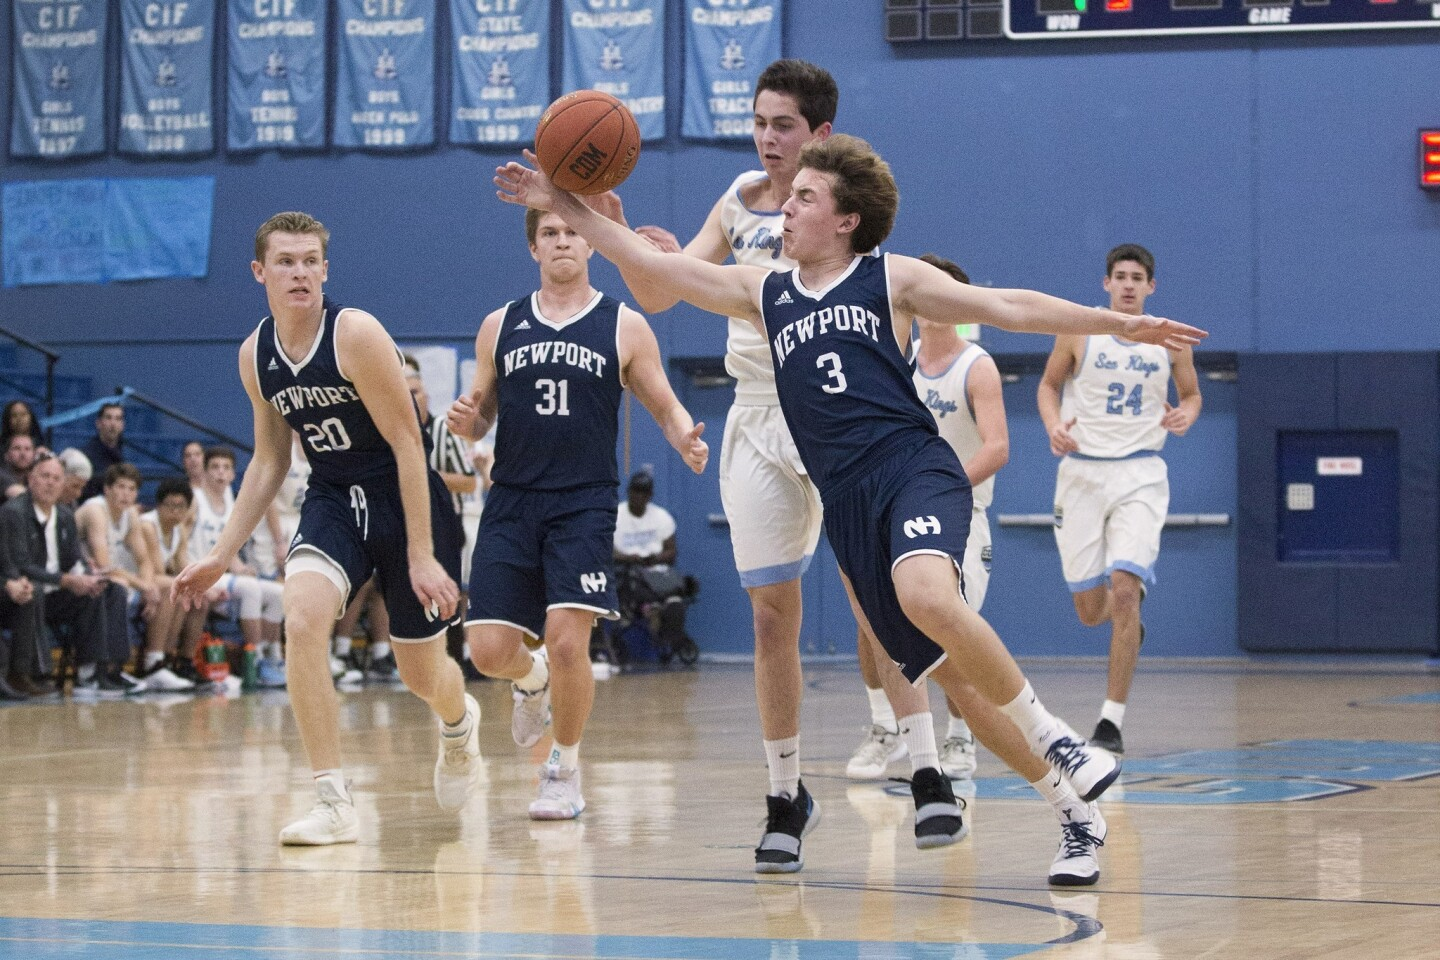 Photo Gallery: Newport Harbor vs. Corona del Mar in boys' basketball